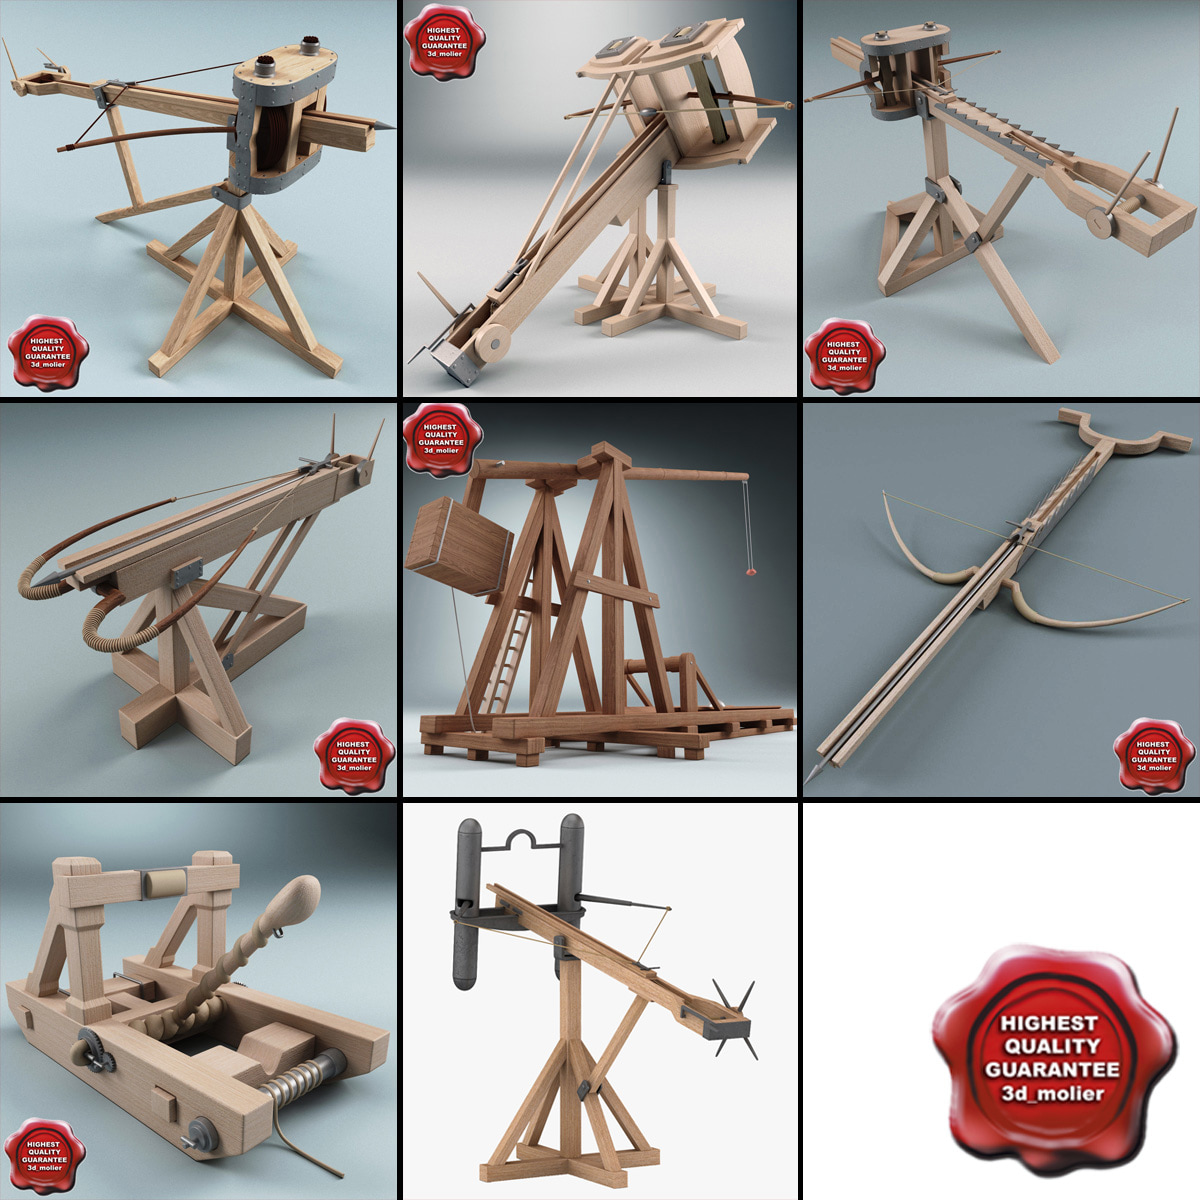 Siege_Weapons_Collection_v2_000.jpg